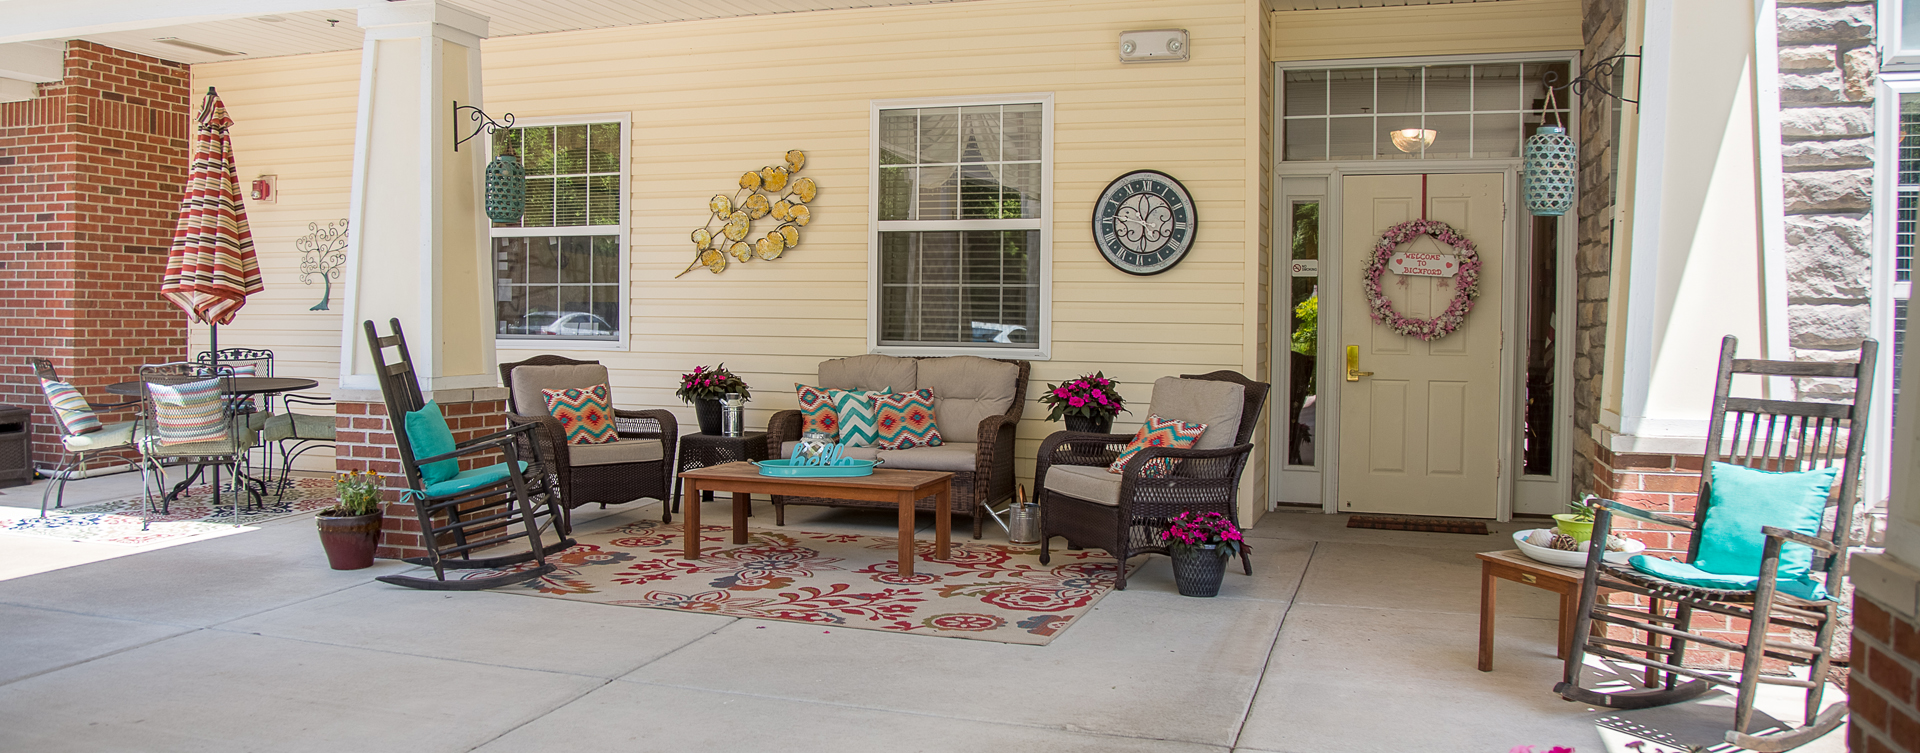 Enjoy conversations with friends on the porch at Bickford of Moline